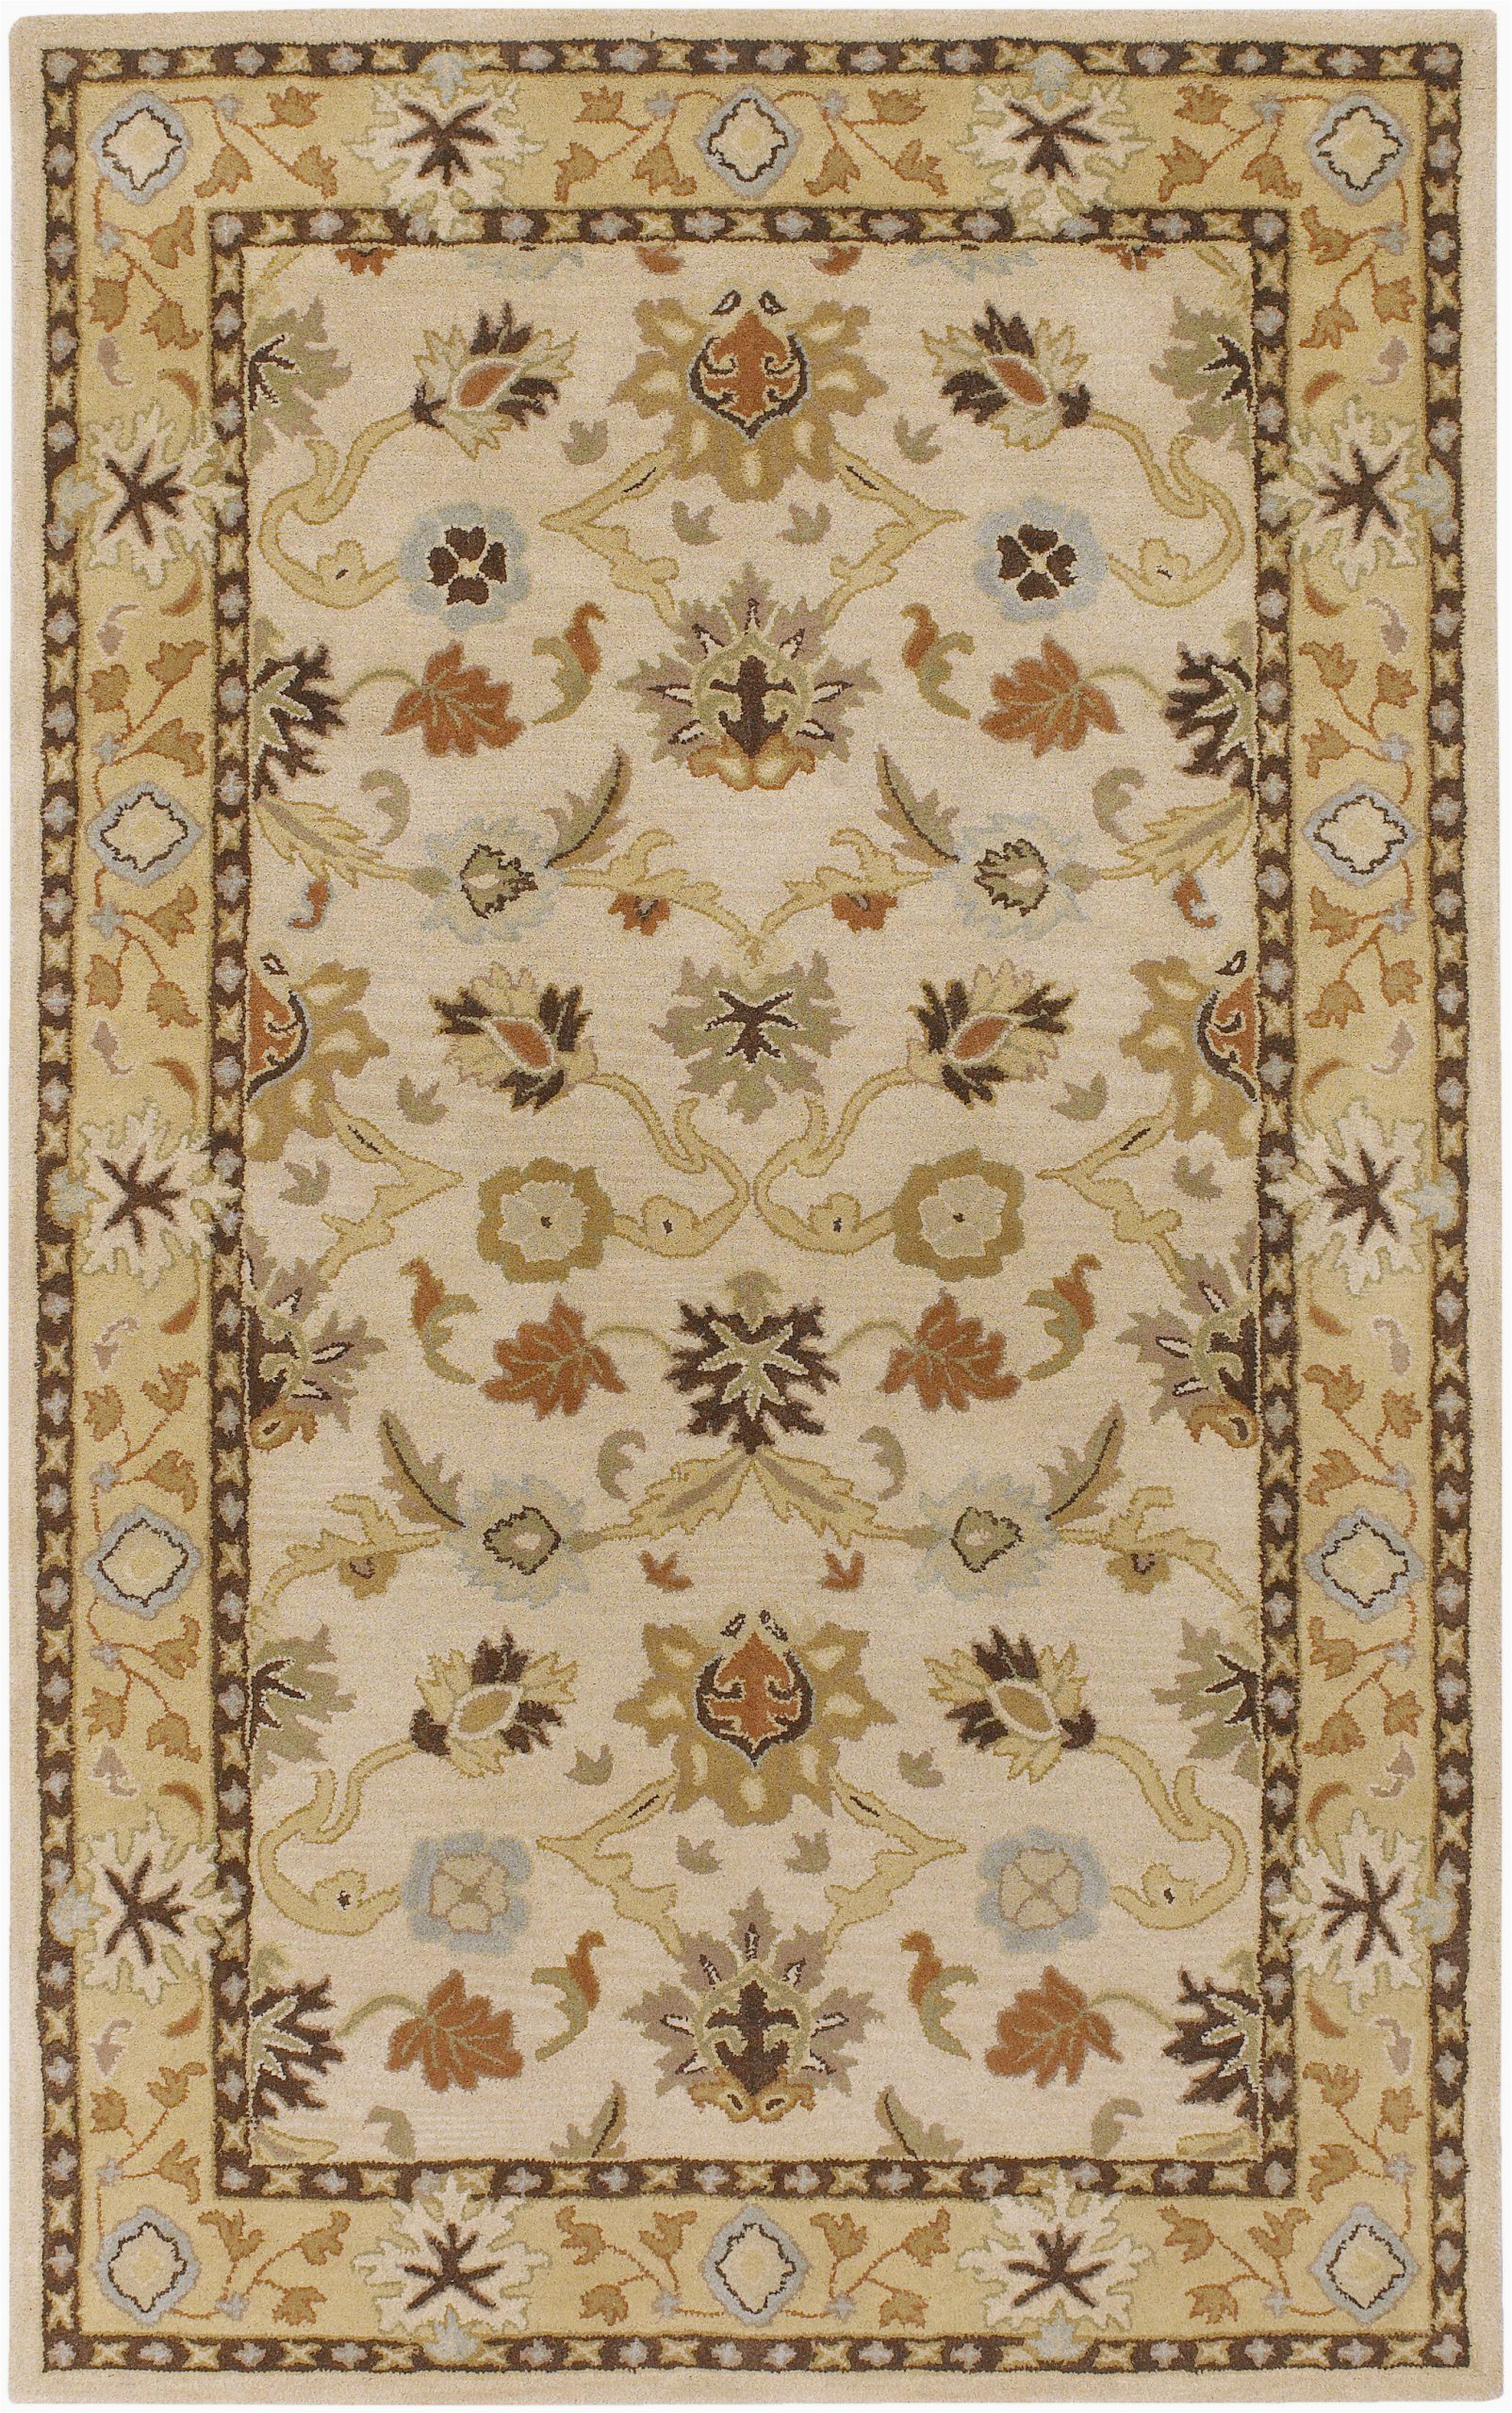 keefer floral handmade tufted wool bei an area rug